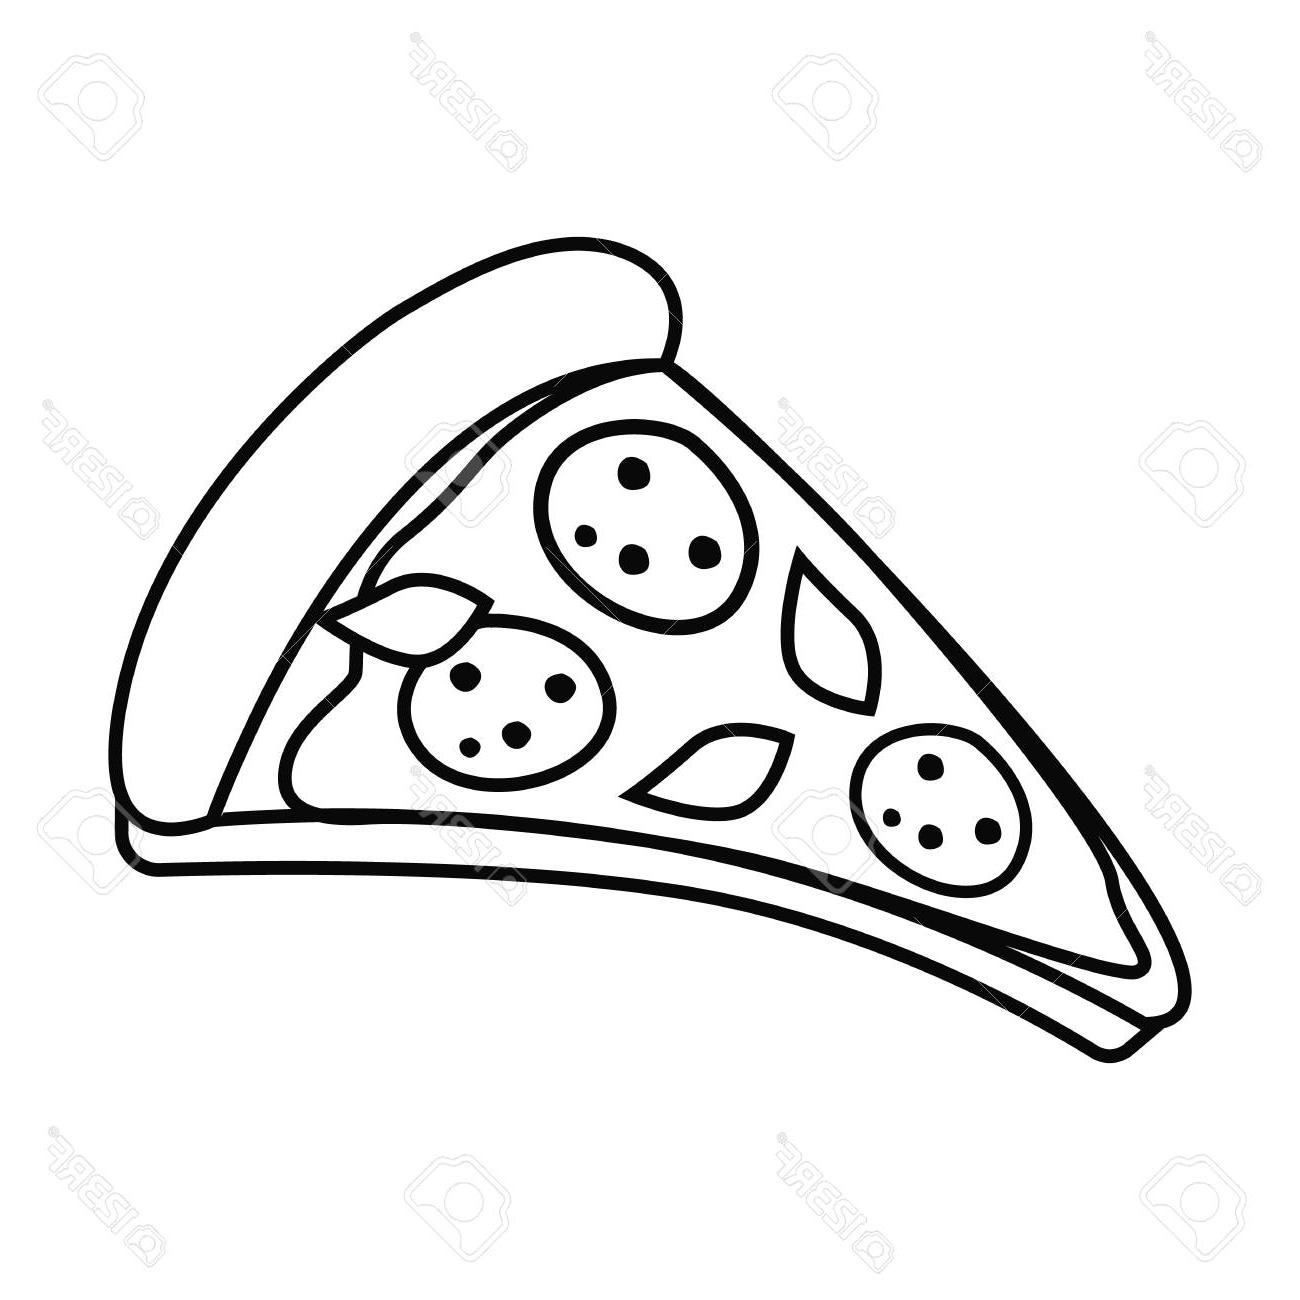 Best Free Vector Black And White Pizza Library » Free Vector Art.